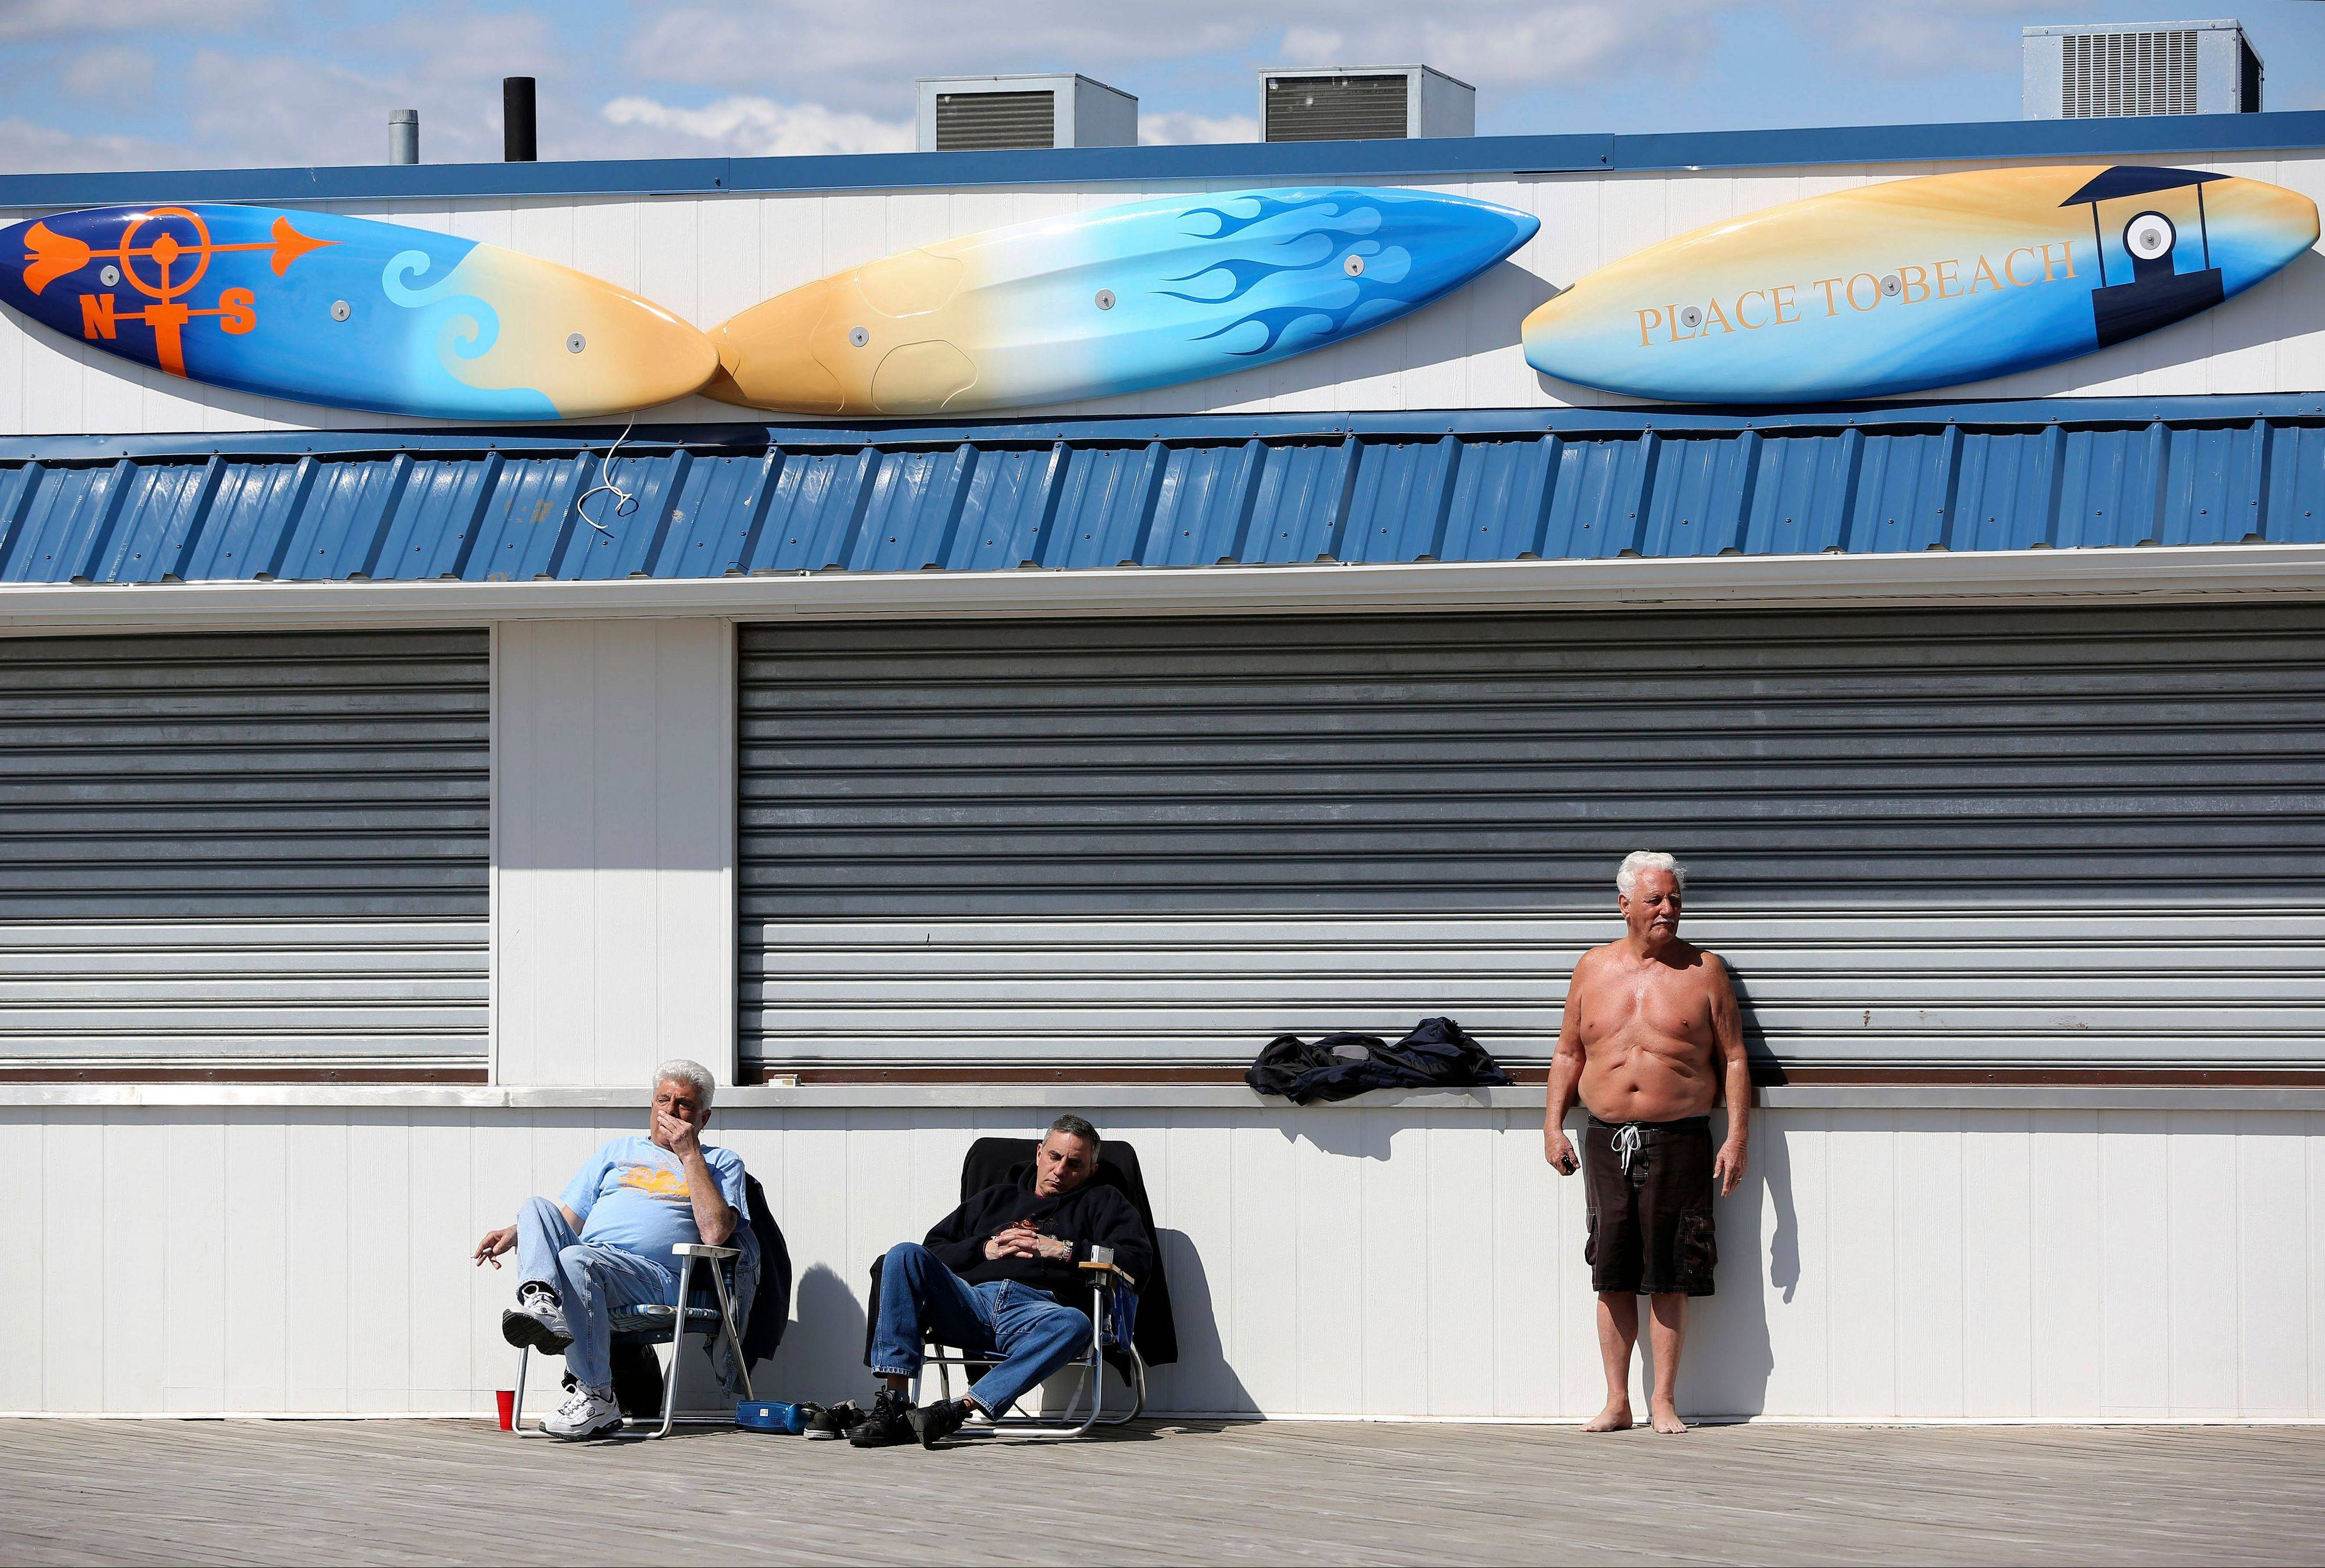 Men sunbathe in front of a closed business on the boardwalk of New York's Coney Island.